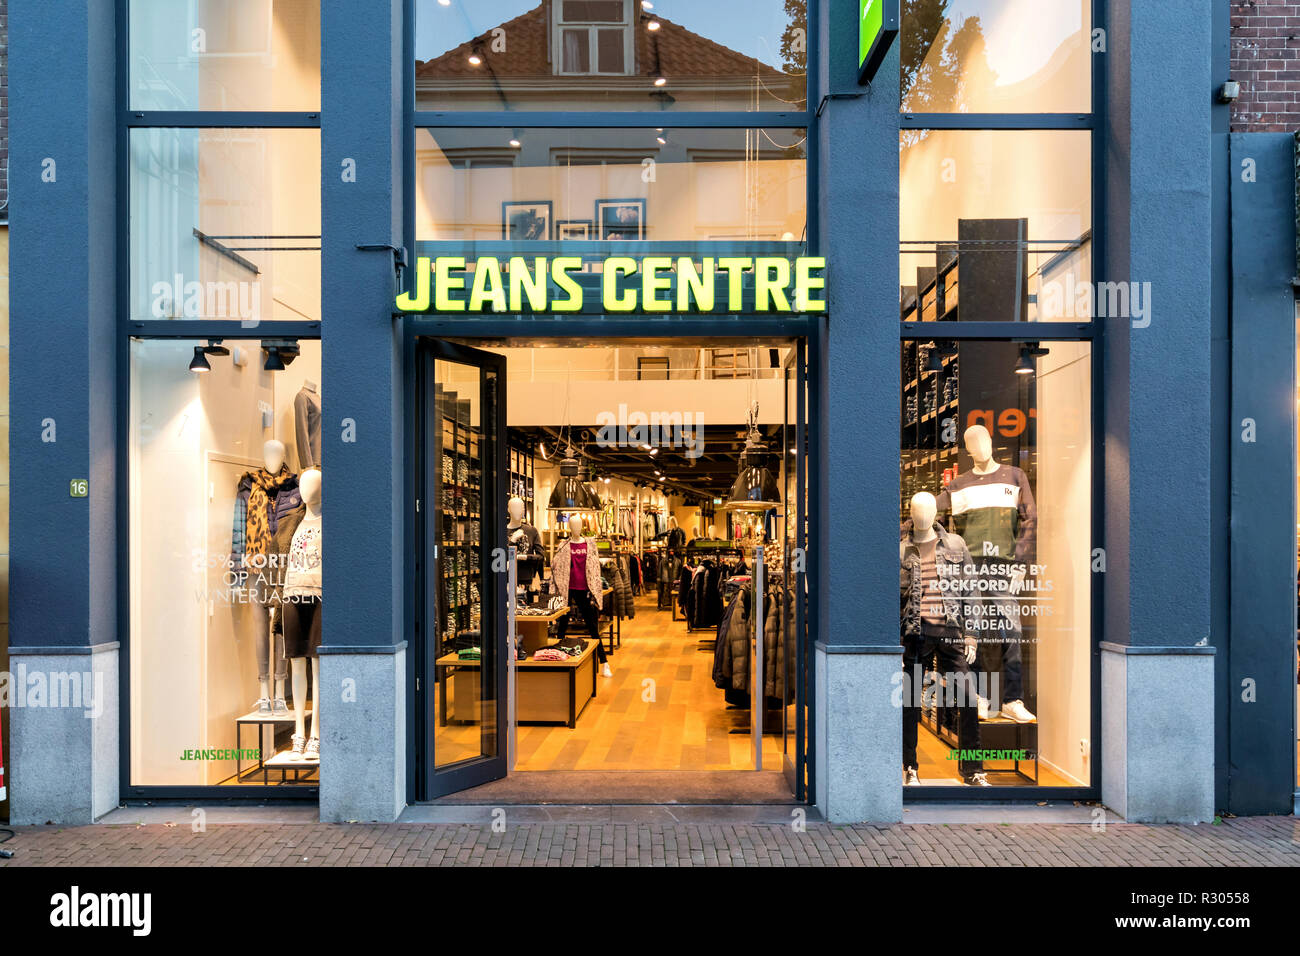 Jeans In Retail Store Stock Photos Jeans In Retail Store Stock